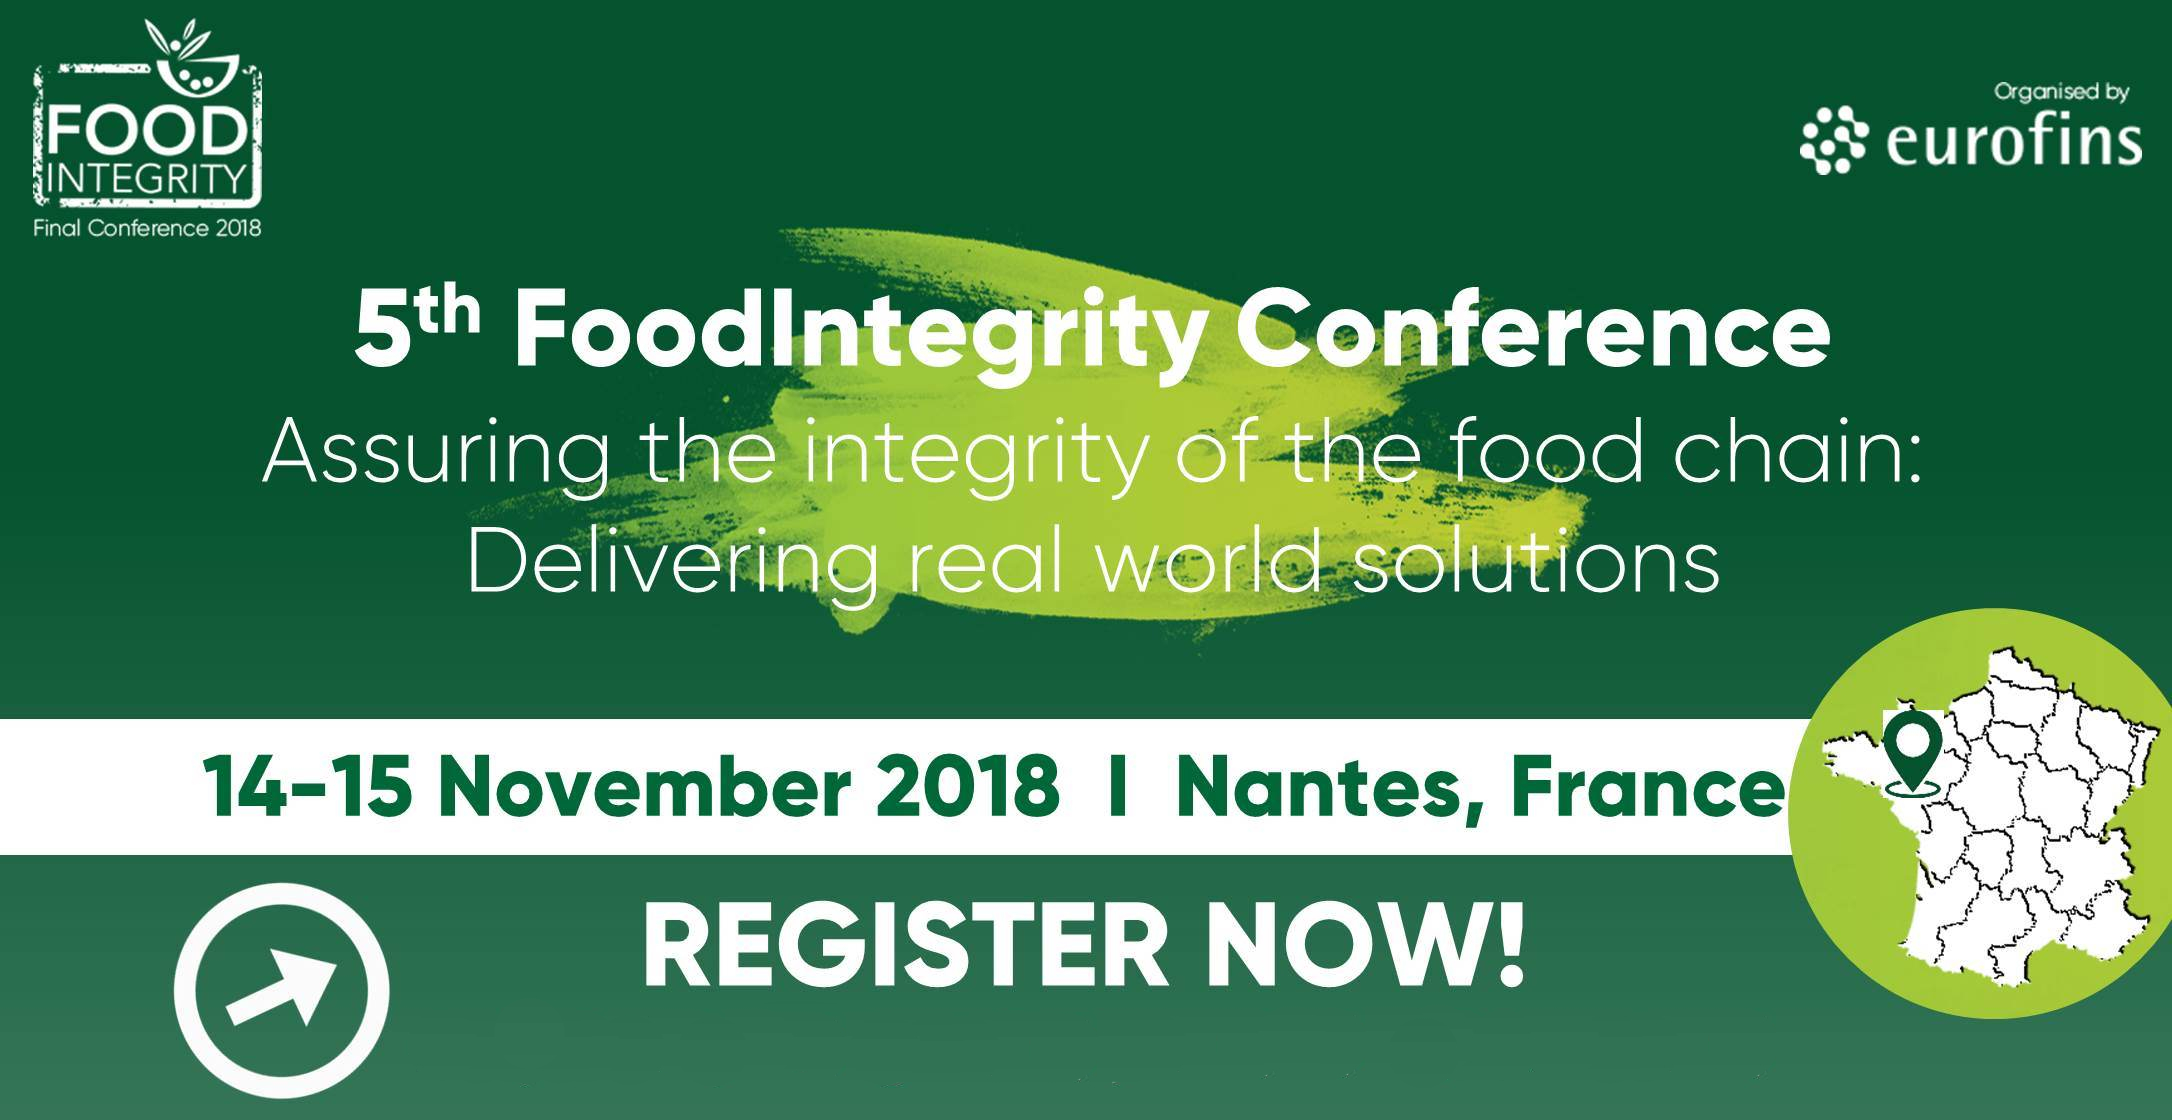 FoodIntegrity Conference